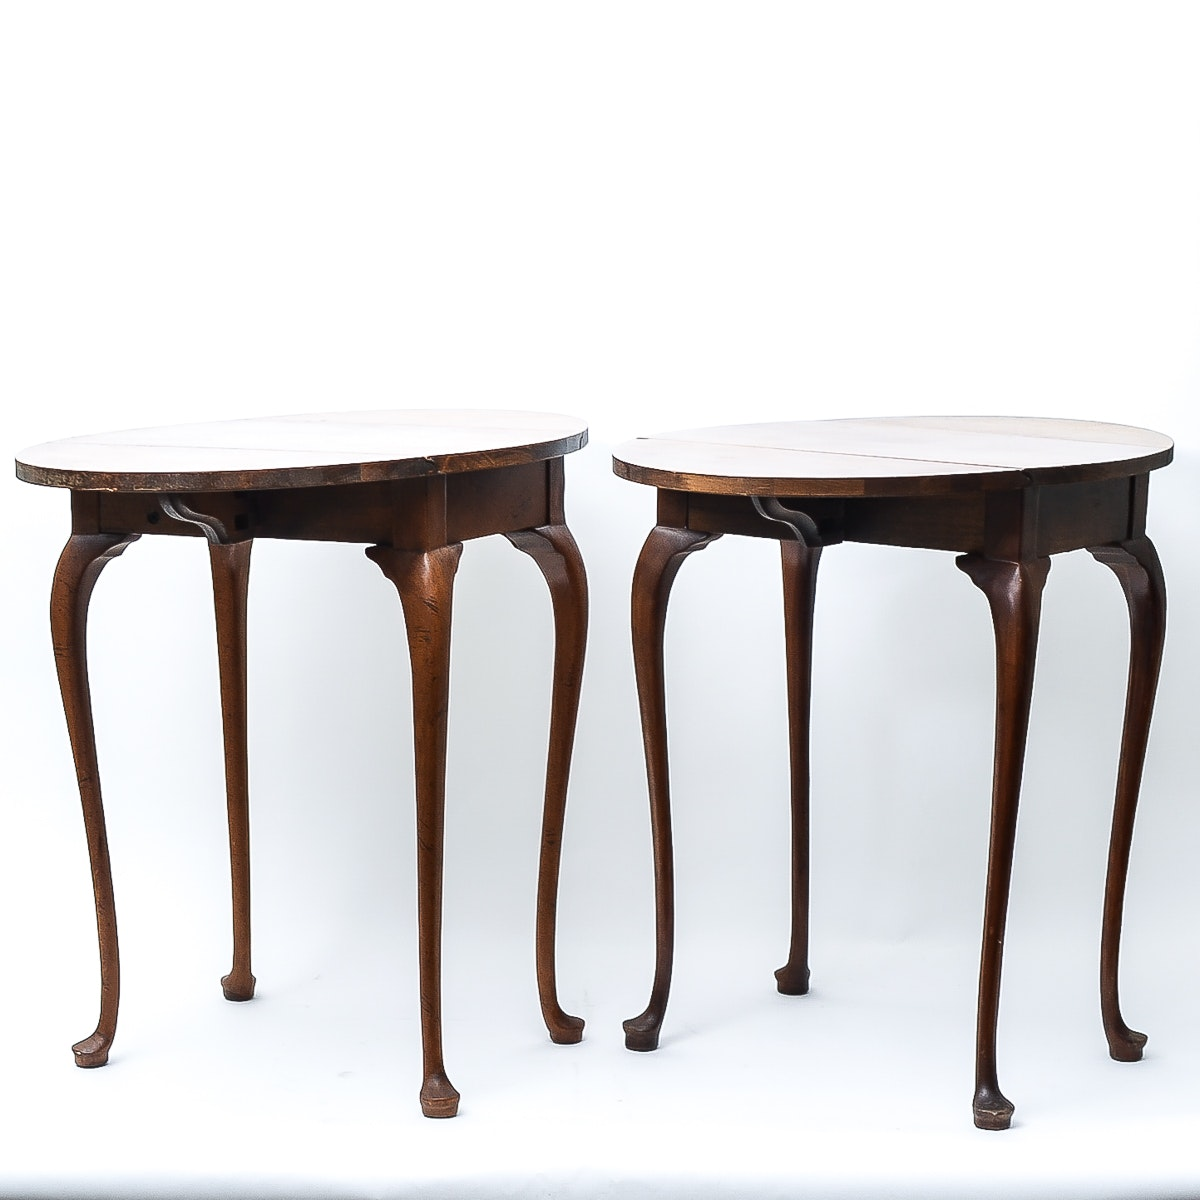 Queen Anne Style Drop-Leaf Side Tables by Baker Furniture